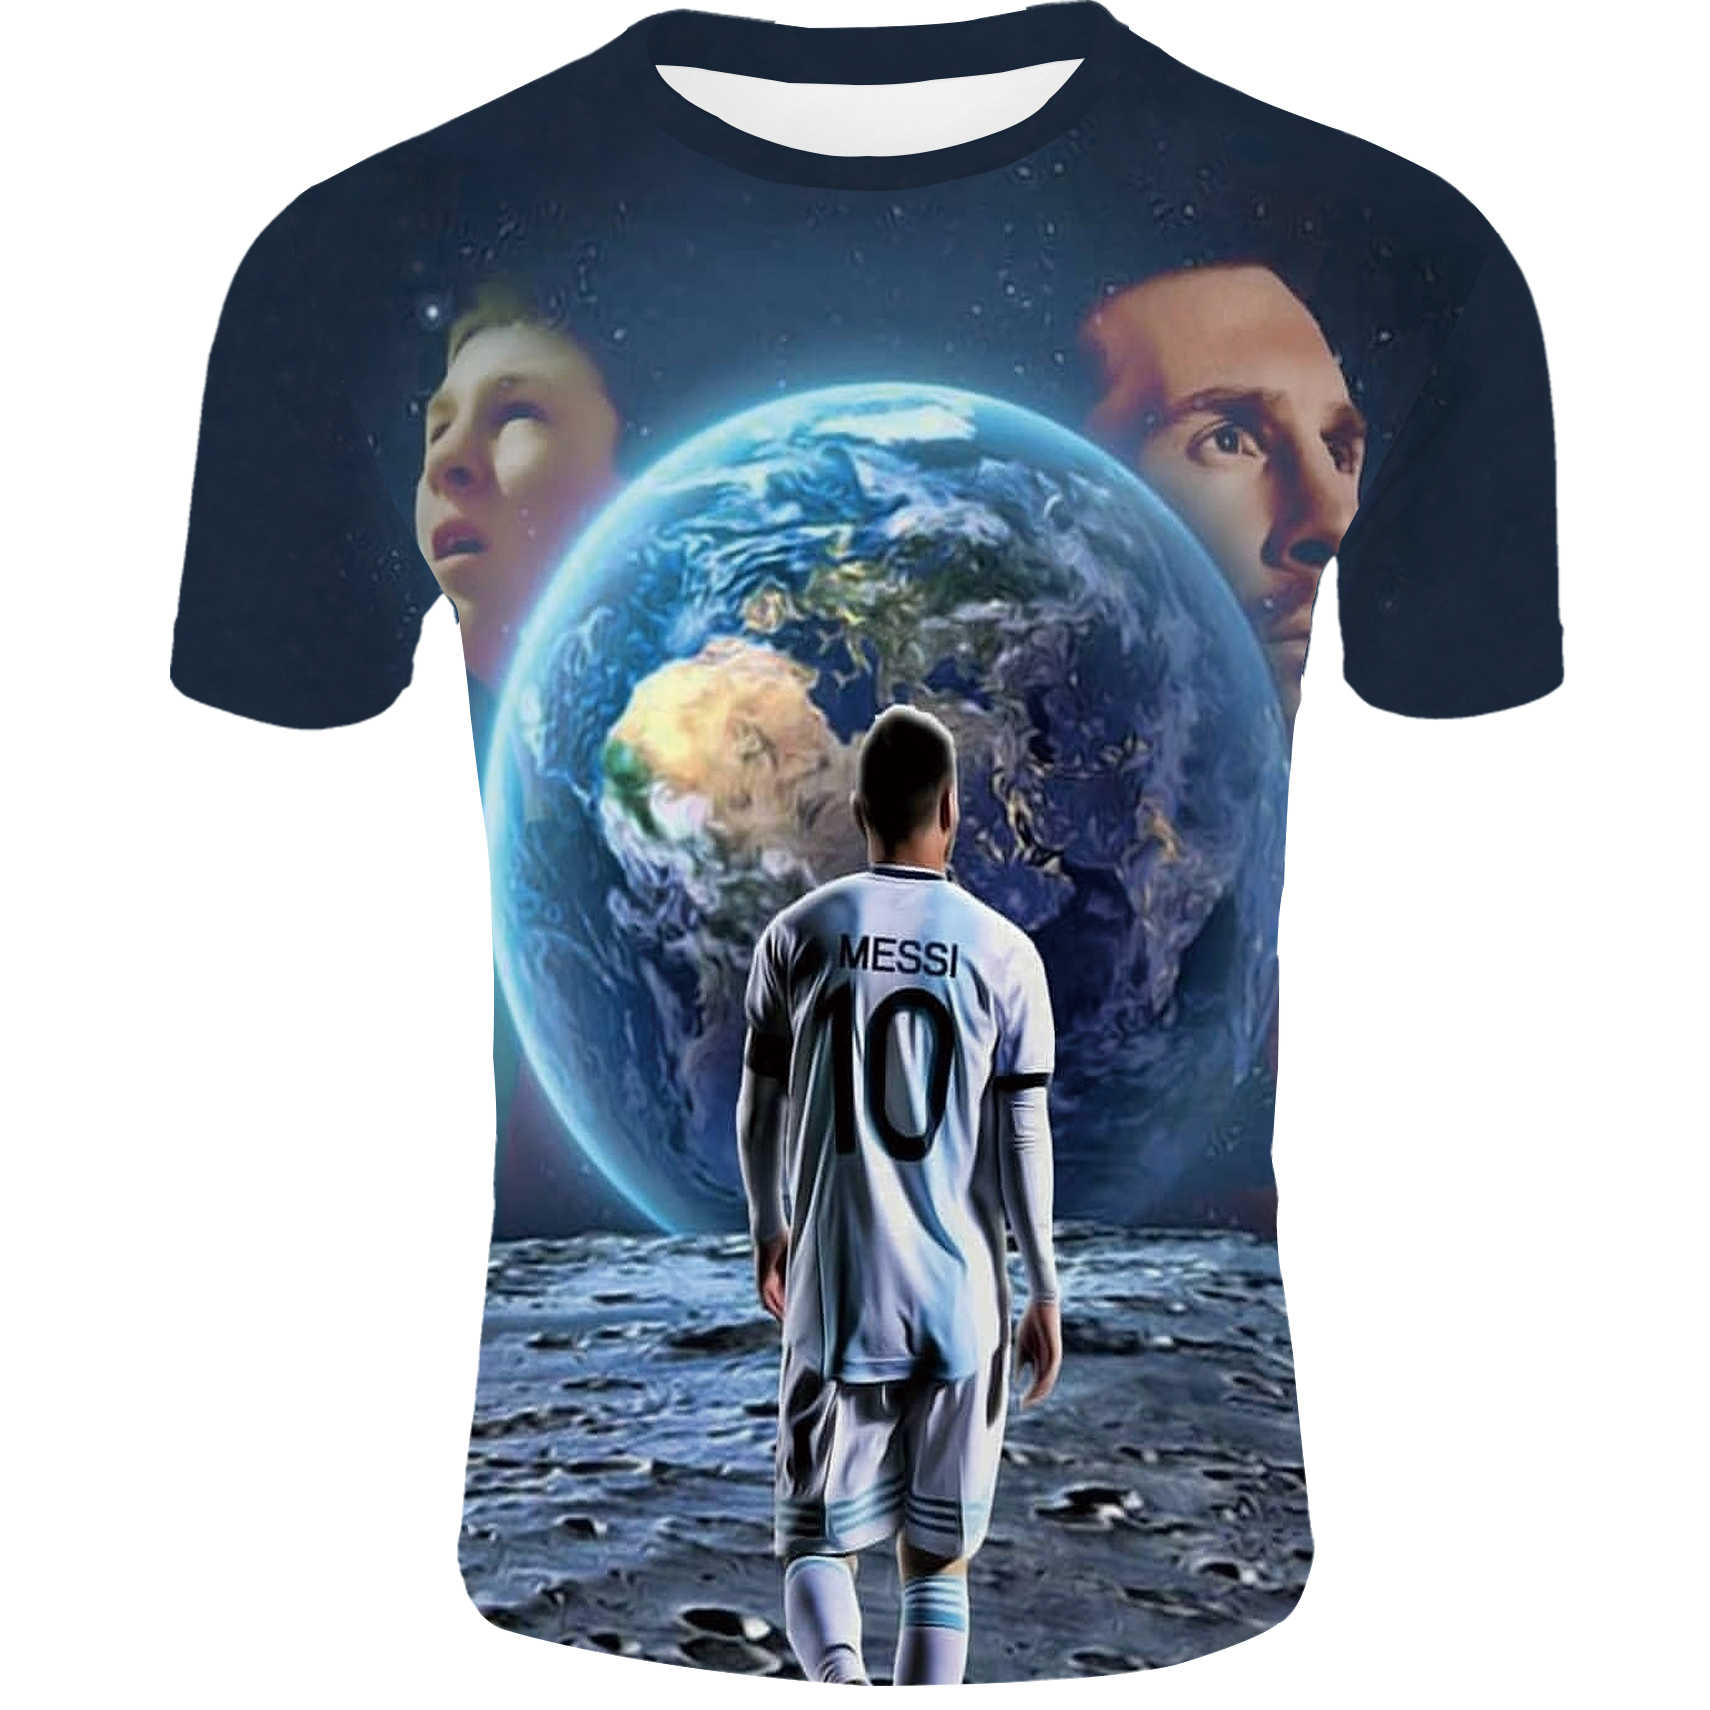 online store 66231 3efe2 2019 summer new men's / women's T-shirt Messi Barcelona T-shirt jersey 3D  print punk clothing street fashion T-shirt topsXXS-4XL